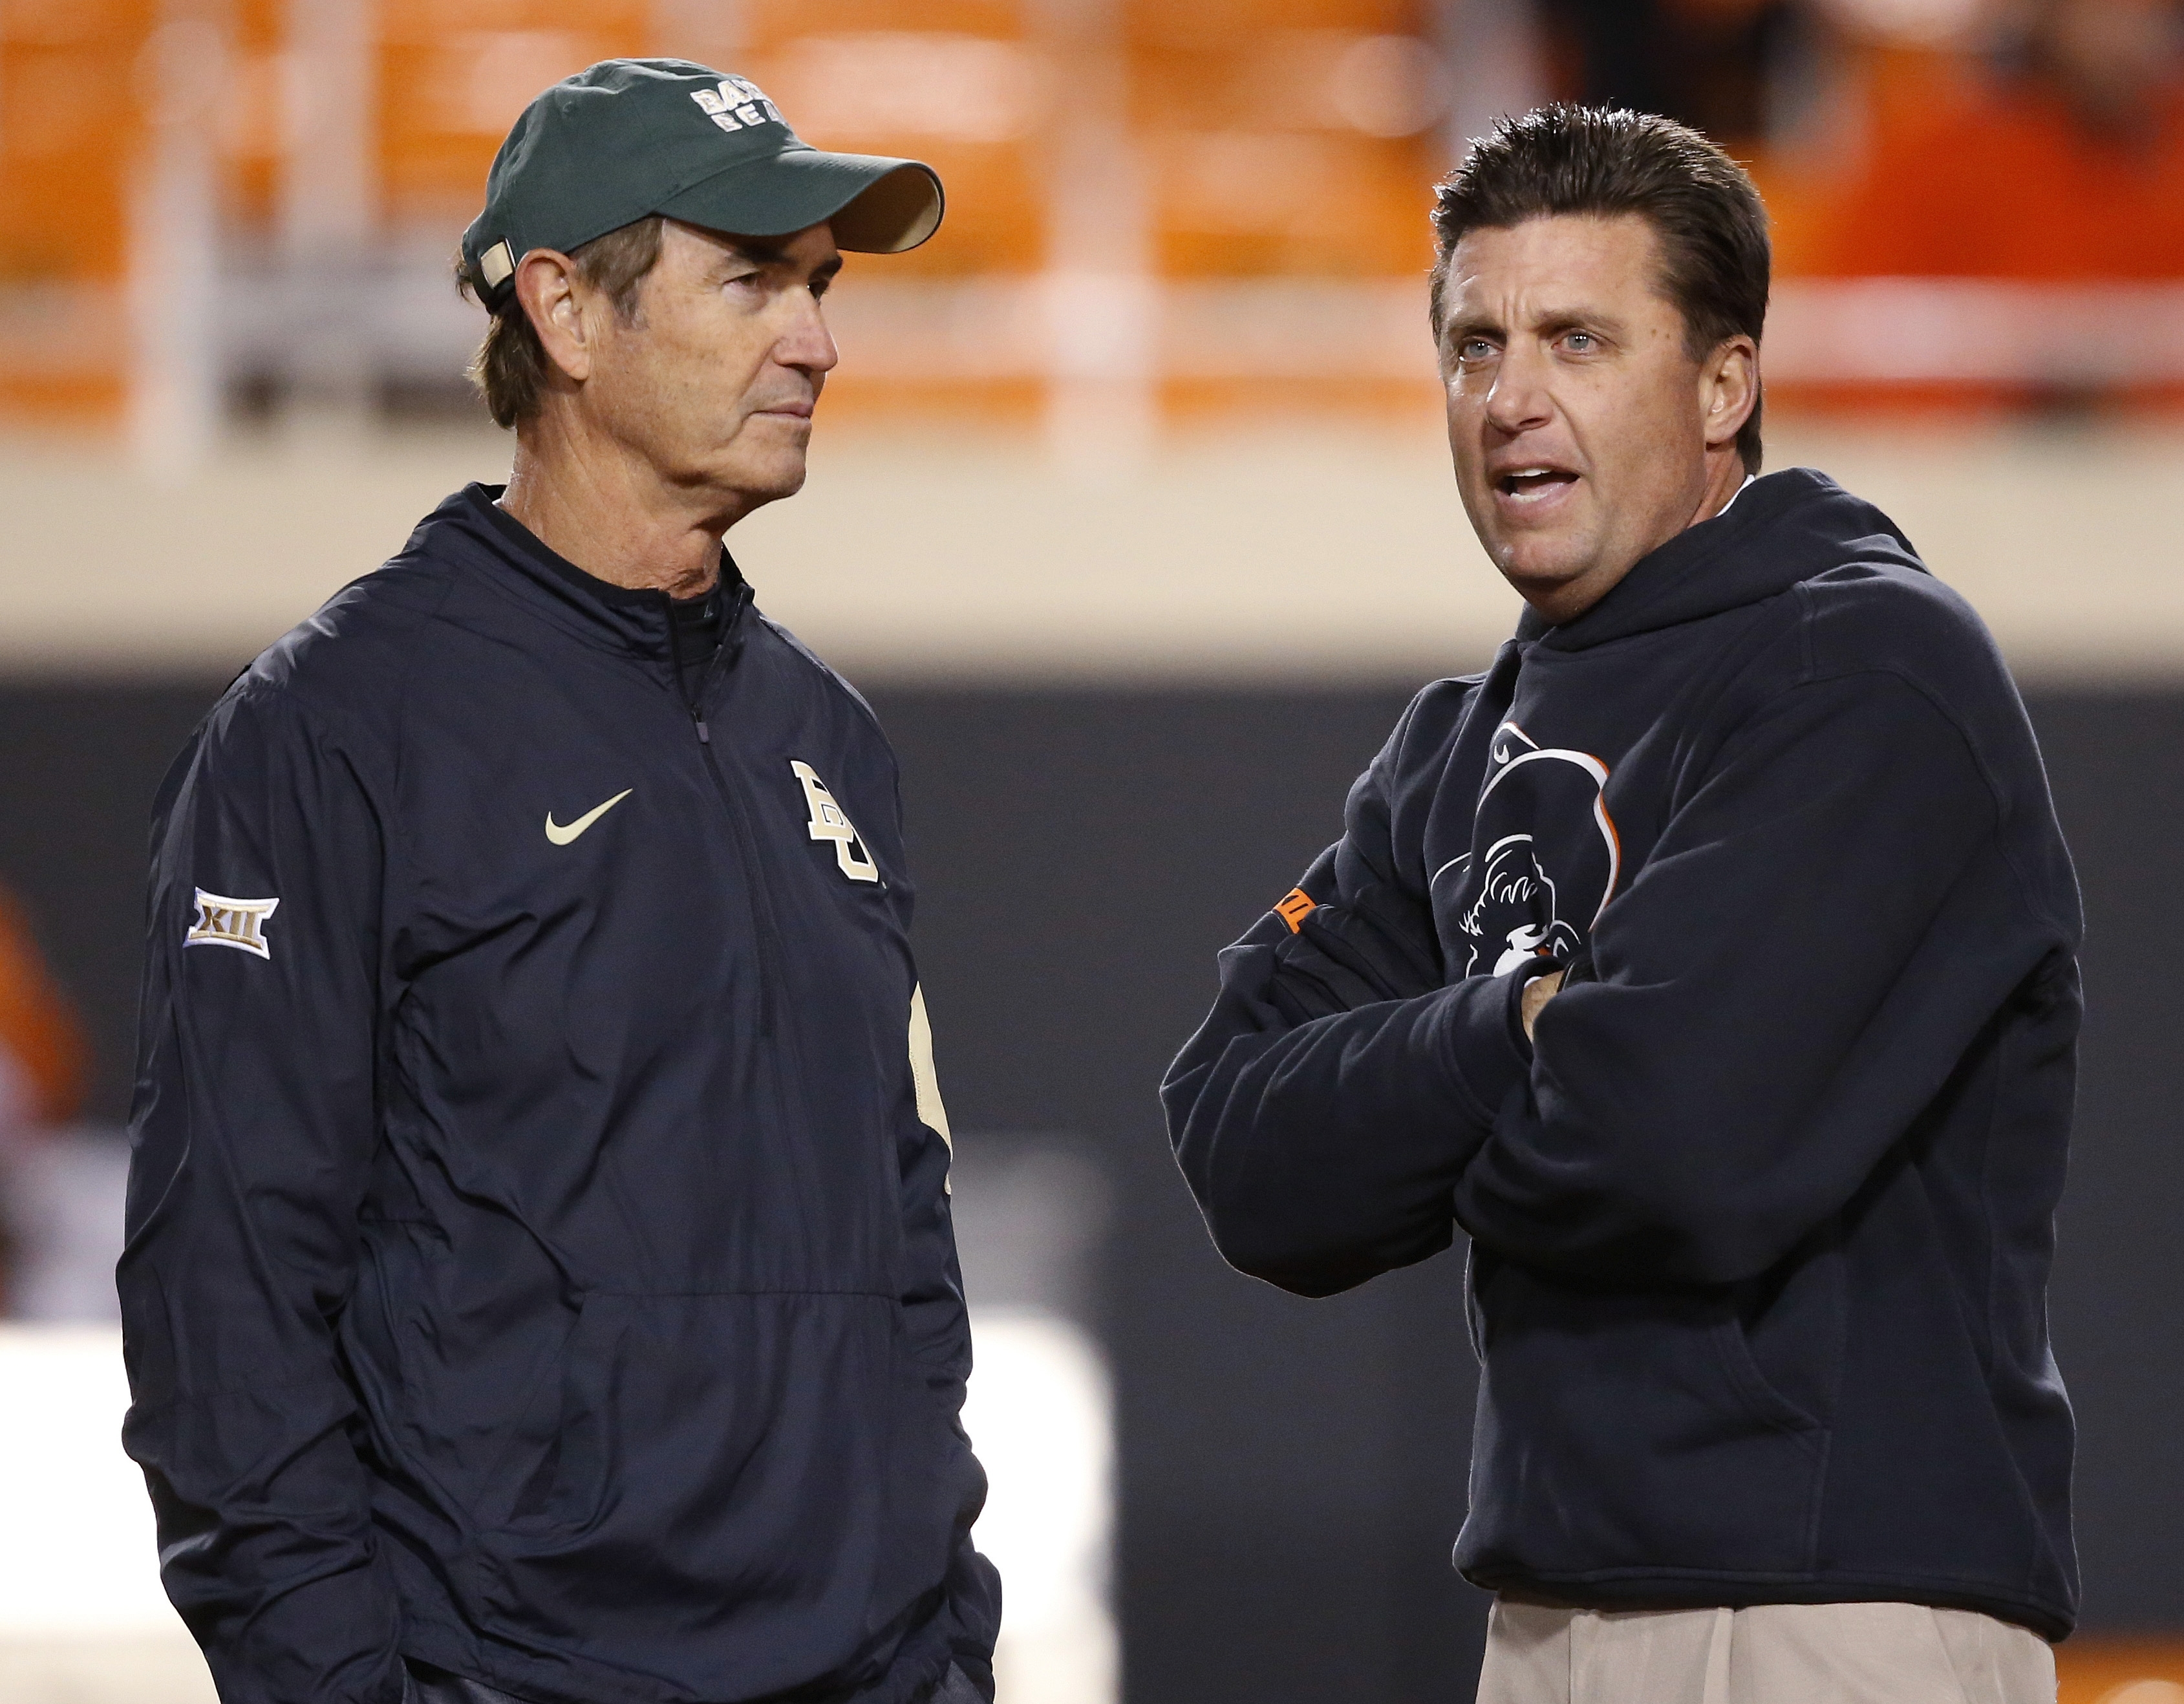 Baylor coach Art Briles, left, talks with Oklahoma State coach Mike Gundy before an NCAA college football game in Stillwater, Okla., Saturday, Nov. 21, 2015. (AP Photo/Sue Ogrocki)